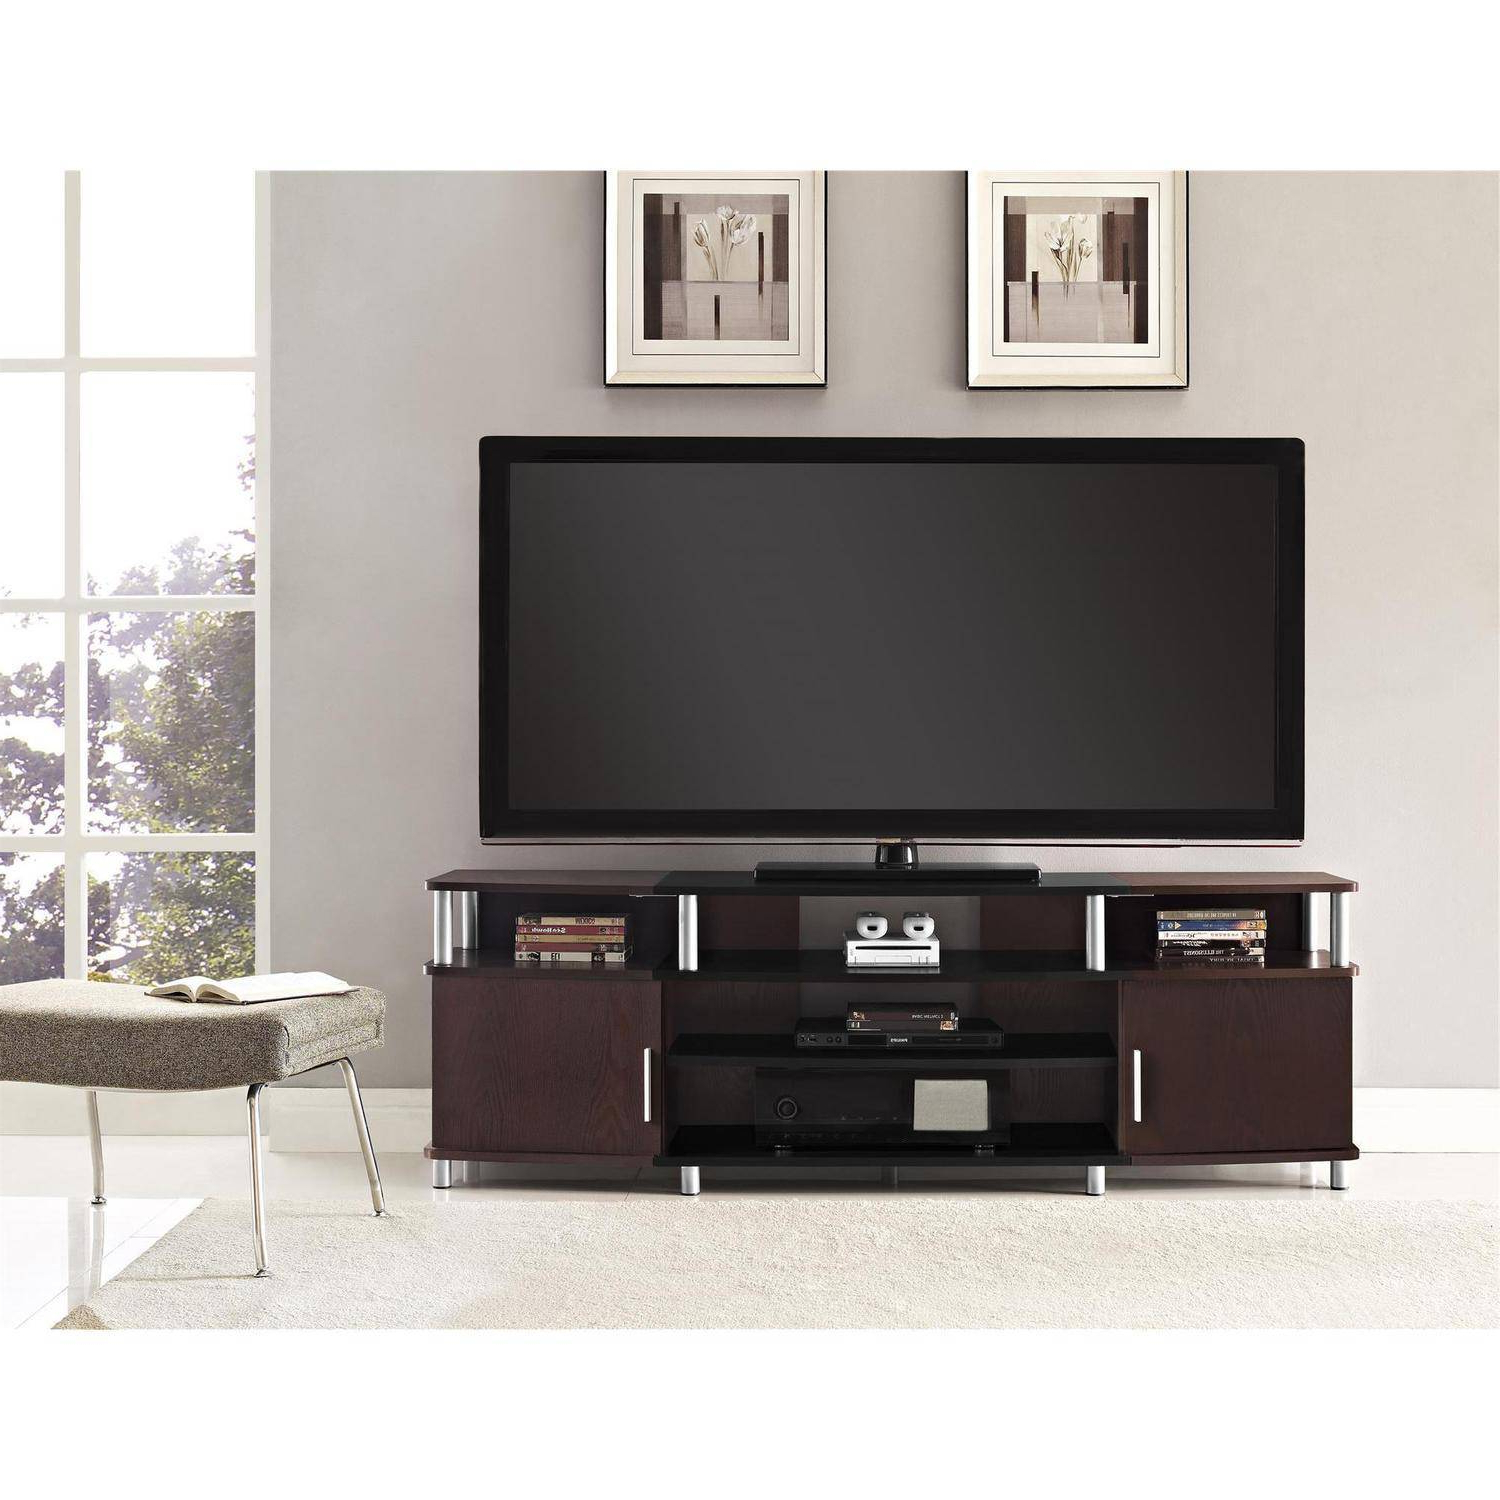 50 Inch Tv Stand Ikea Buy Walmart Stands With Mount Black Friday Intended For Oxford 70 Inch Tv Stands (View 11 of 20)